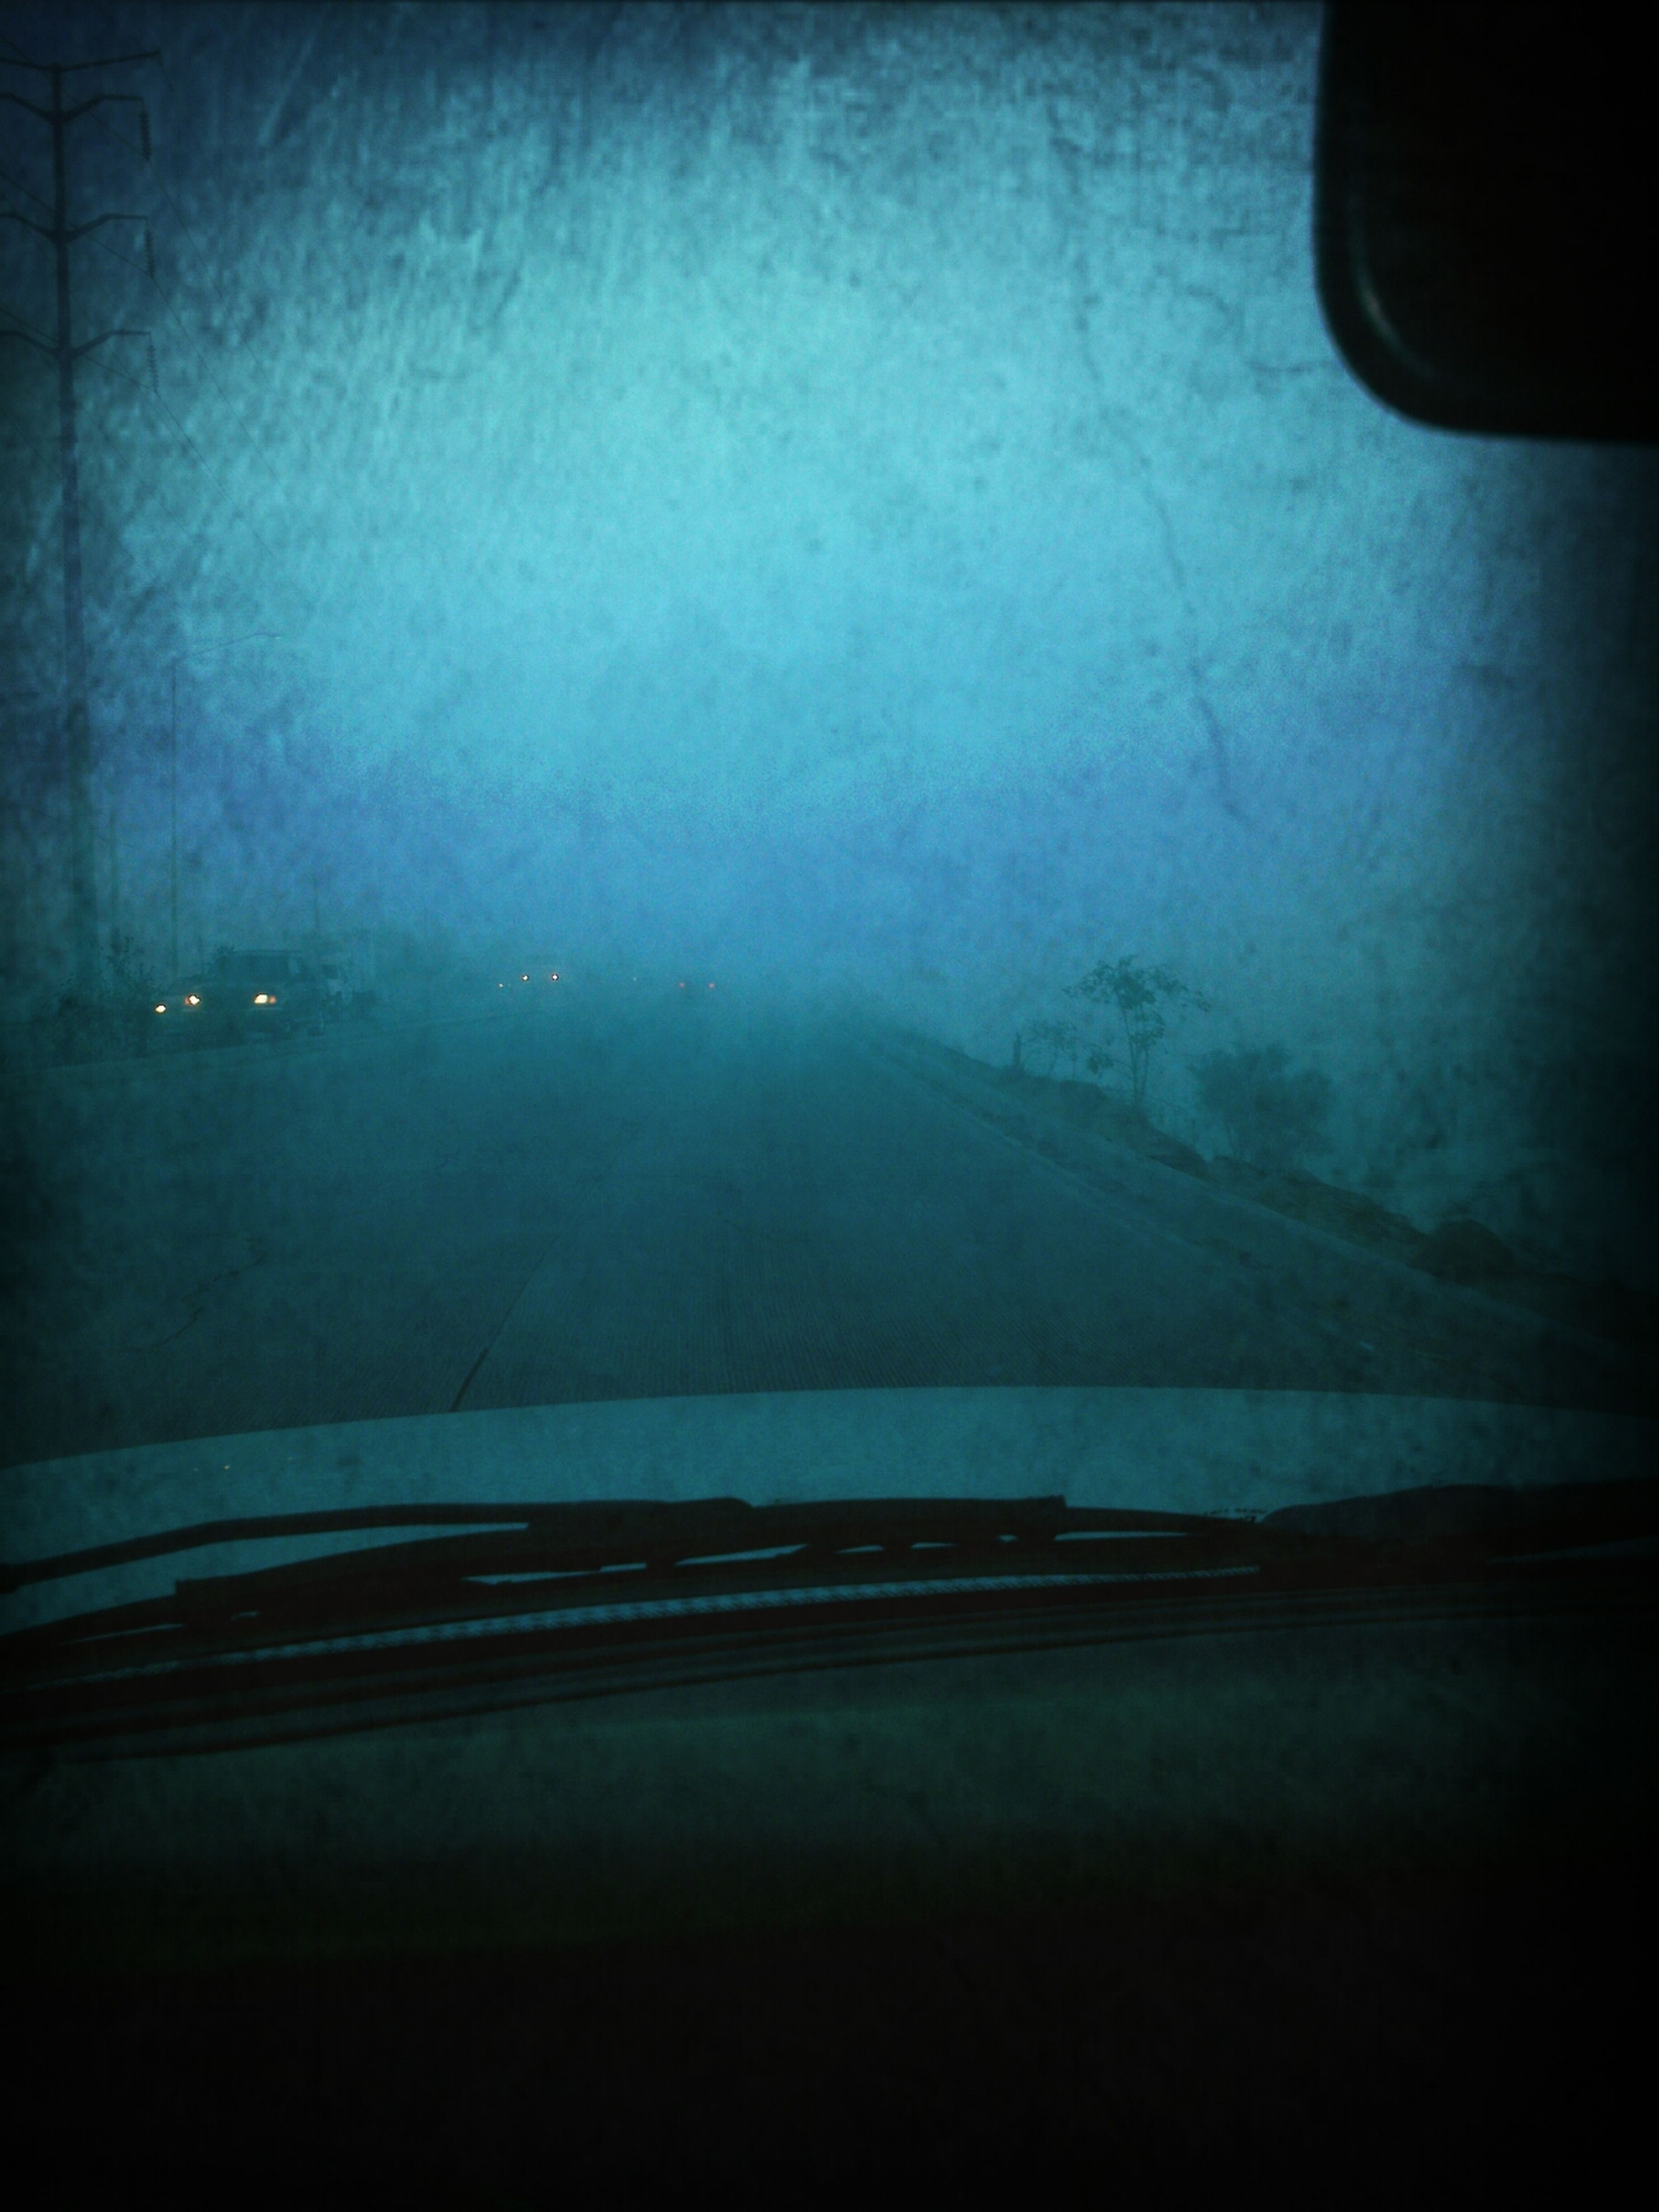 transportation, mode of transport, car, land vehicle, vehicle interior, transparent, glass - material, indoors, weather, window, road, water, car interior, copy space, reflection, no people, windshield, nature, fog, motion